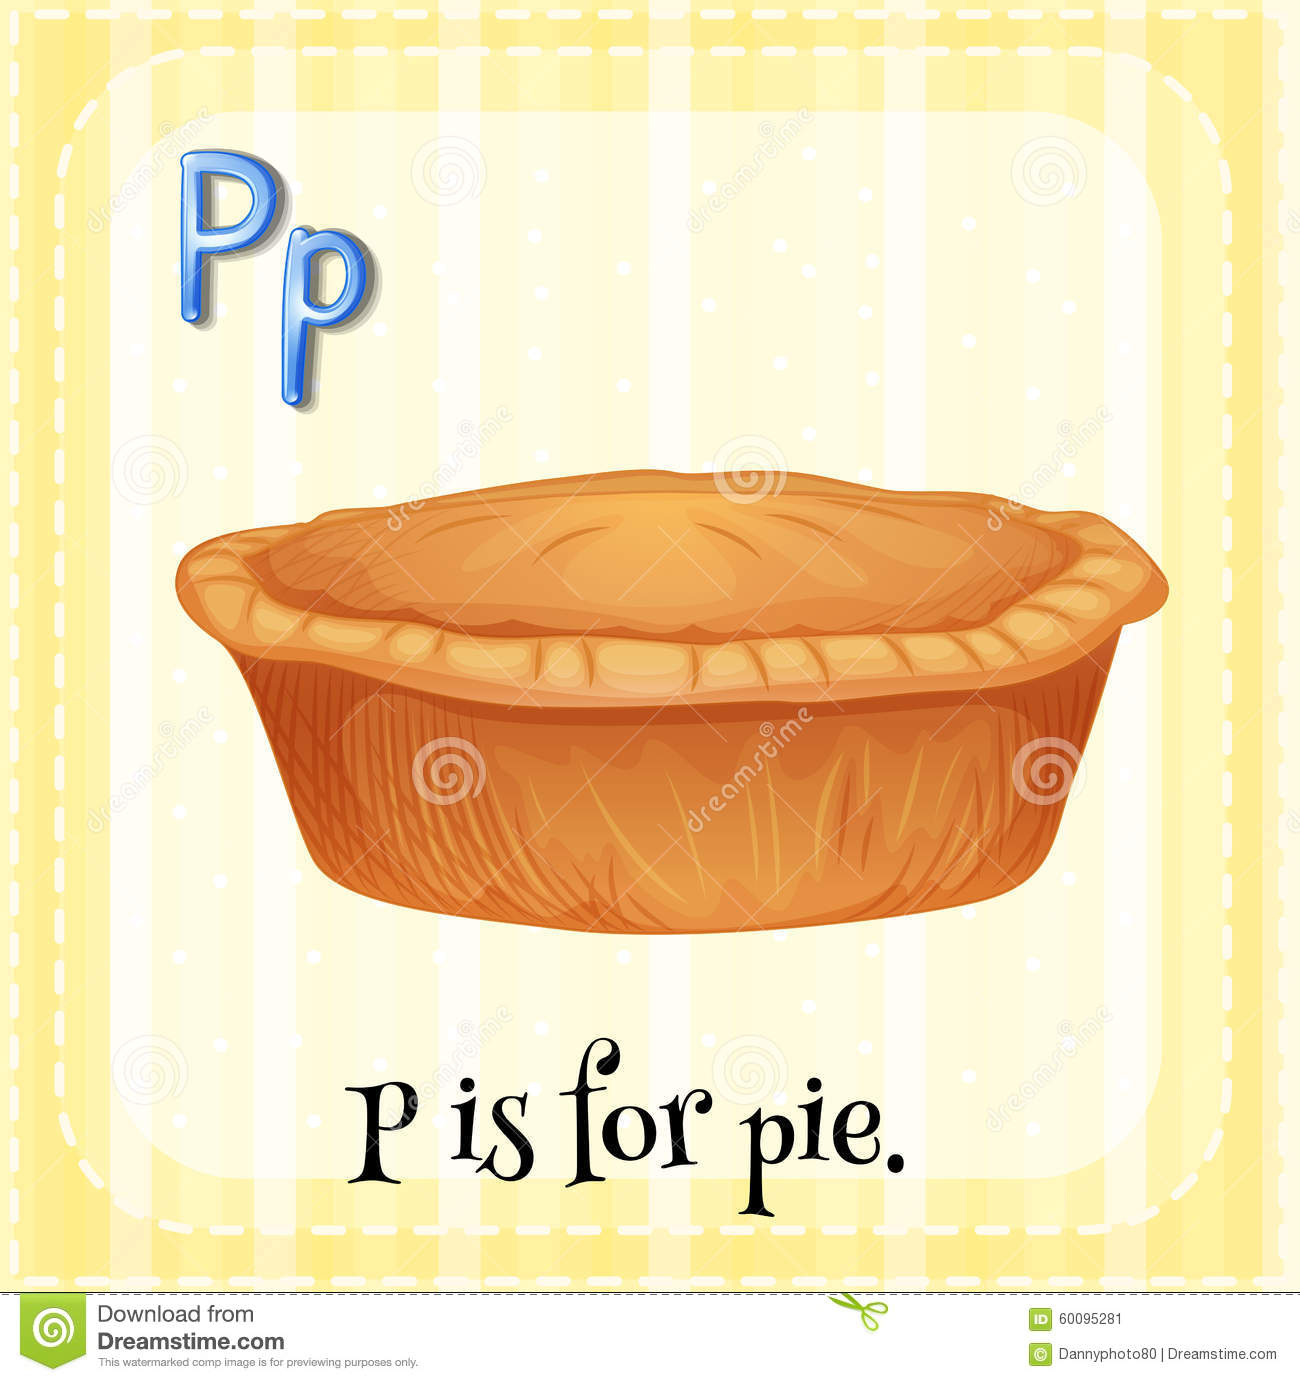 Stock Illustration Flashcard Letter P Pie Illustration Image60095281 on Latest Writing A Business Letter